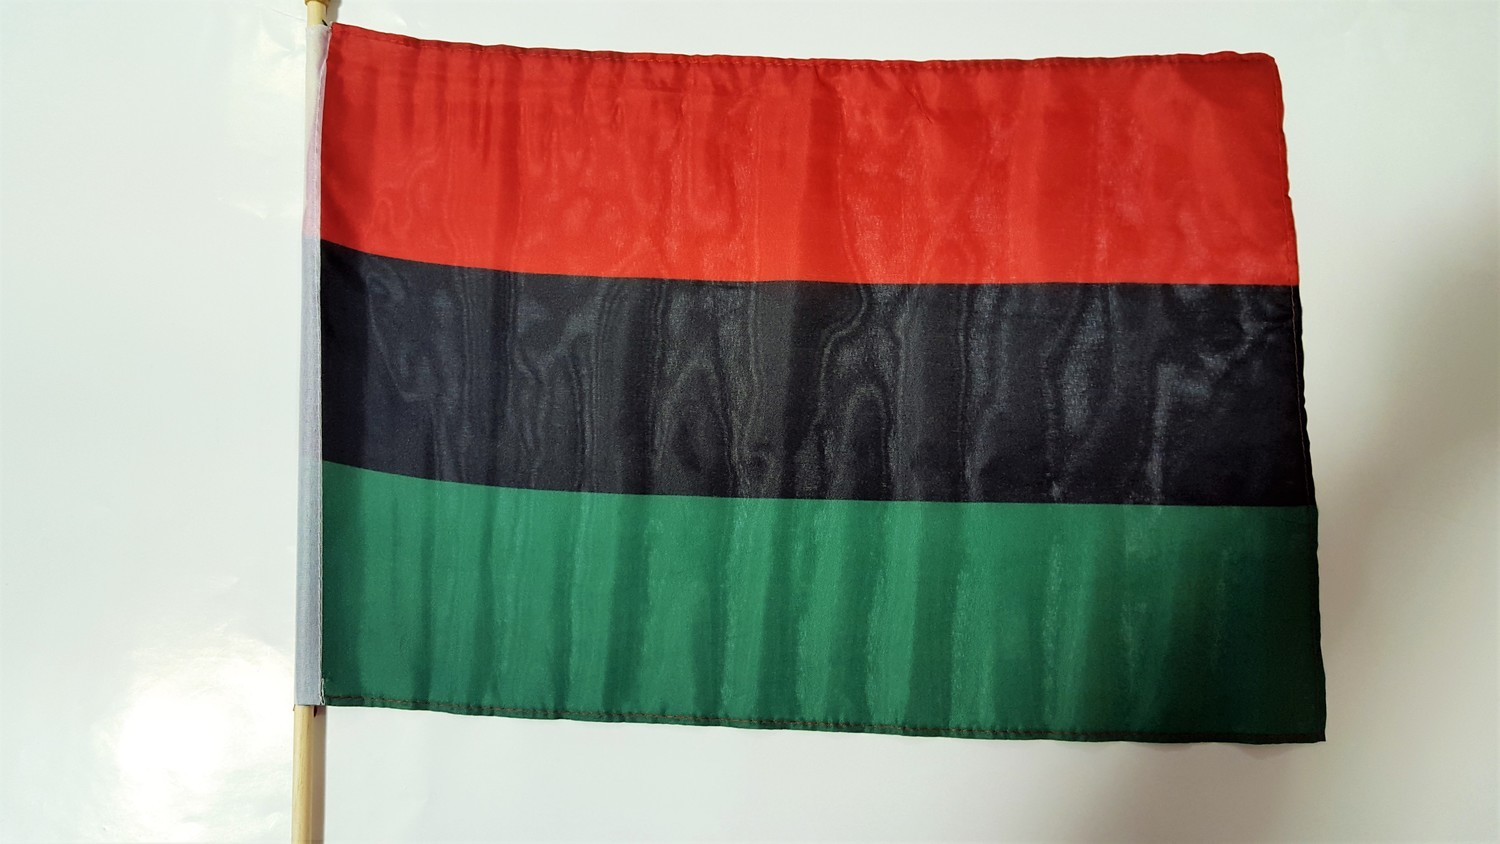 12 x 18 RBG Flag on a Stick